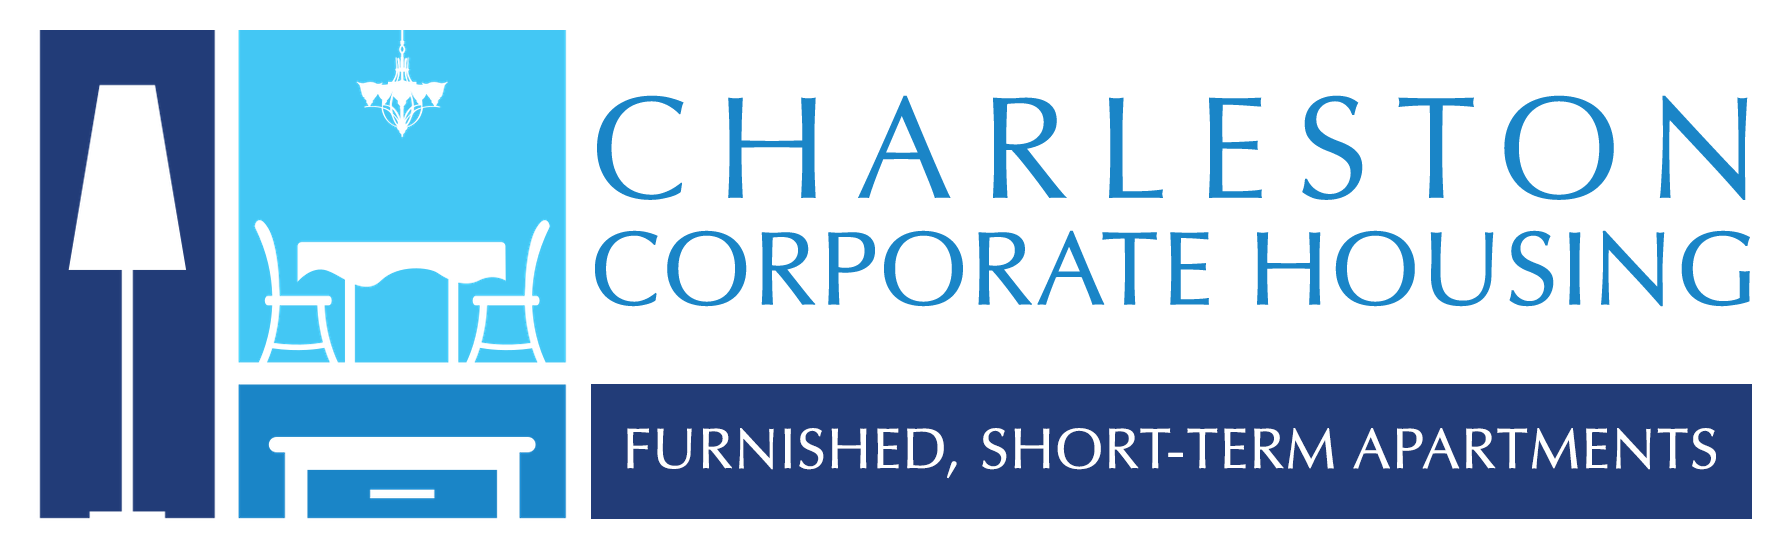 Charleston Corporate Housing, LLC Logo